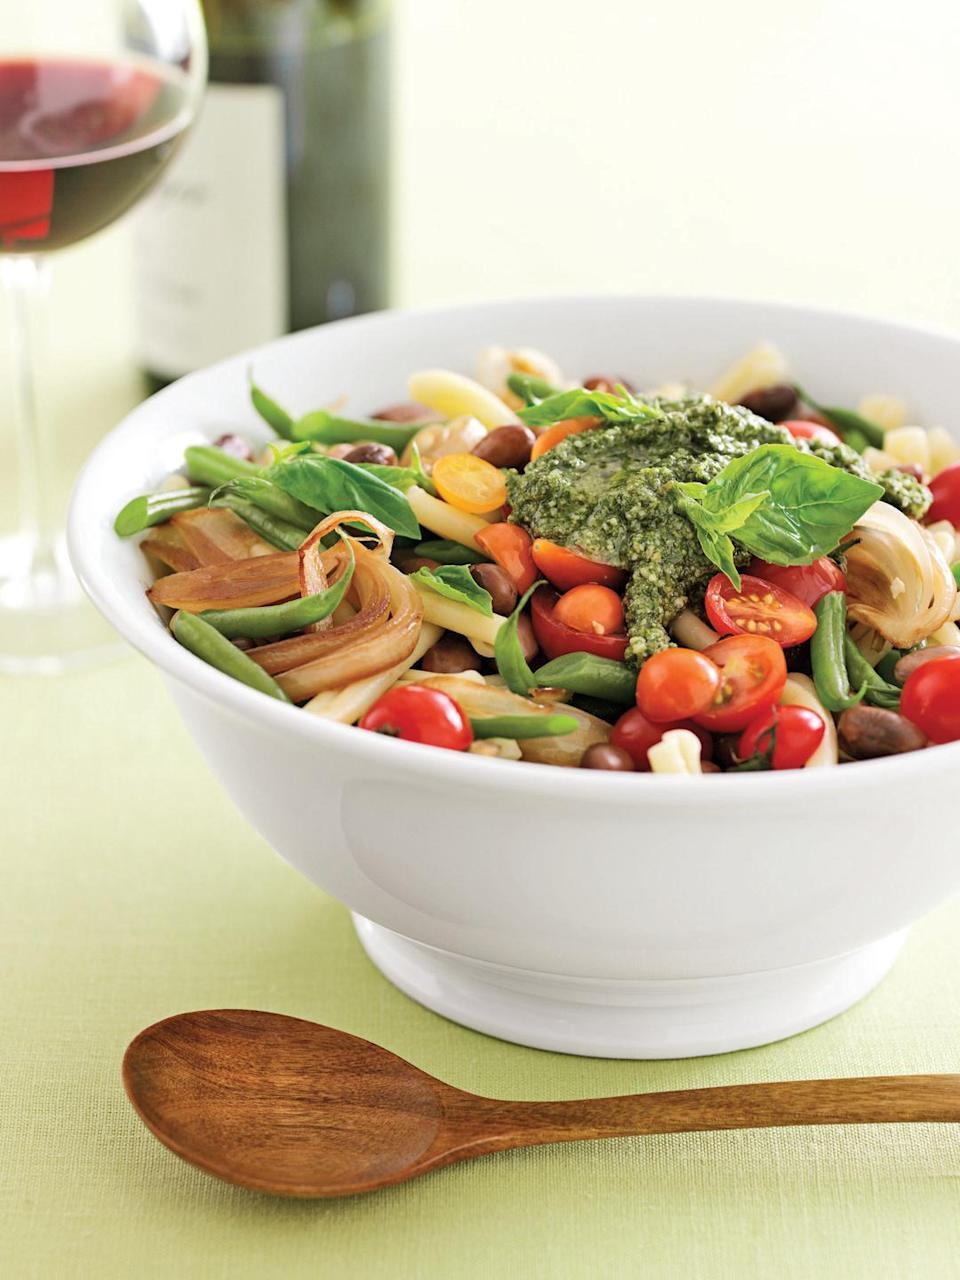 """<p>Use fresh, locally grown ingredients for very tasty fare. Pesto adds robust flavor to this one-dish pasta supper. </p><p><strong><a href=""""https://www.countryliving.com/food-drinks/recipes/a1046/pasta-e-fagioli-pesto-3152/"""" rel=""""nofollow noopener"""" target=""""_blank"""" data-ylk=""""slk:Get the recipe."""" class=""""link rapid-noclick-resp"""">Get the recipe.</a></strong></p>"""